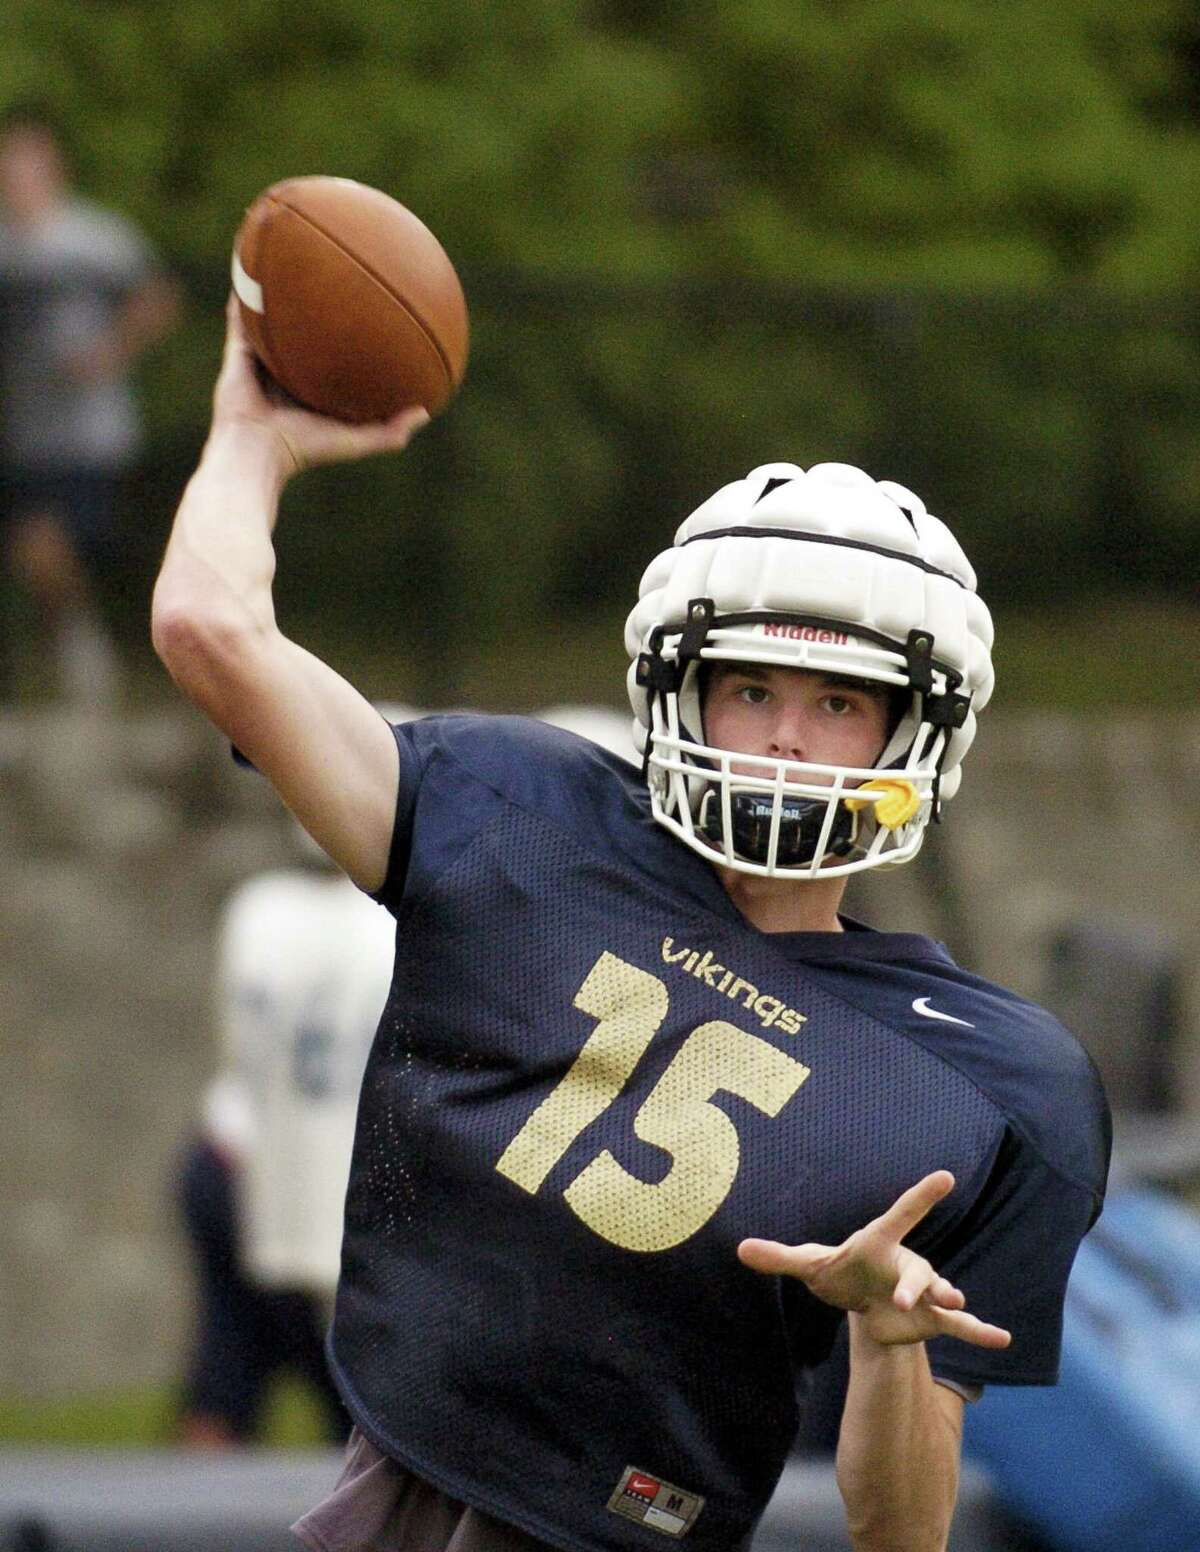 King quarterback Renn Lints warms up during a team practice at the school on Wednesday in Stamford.